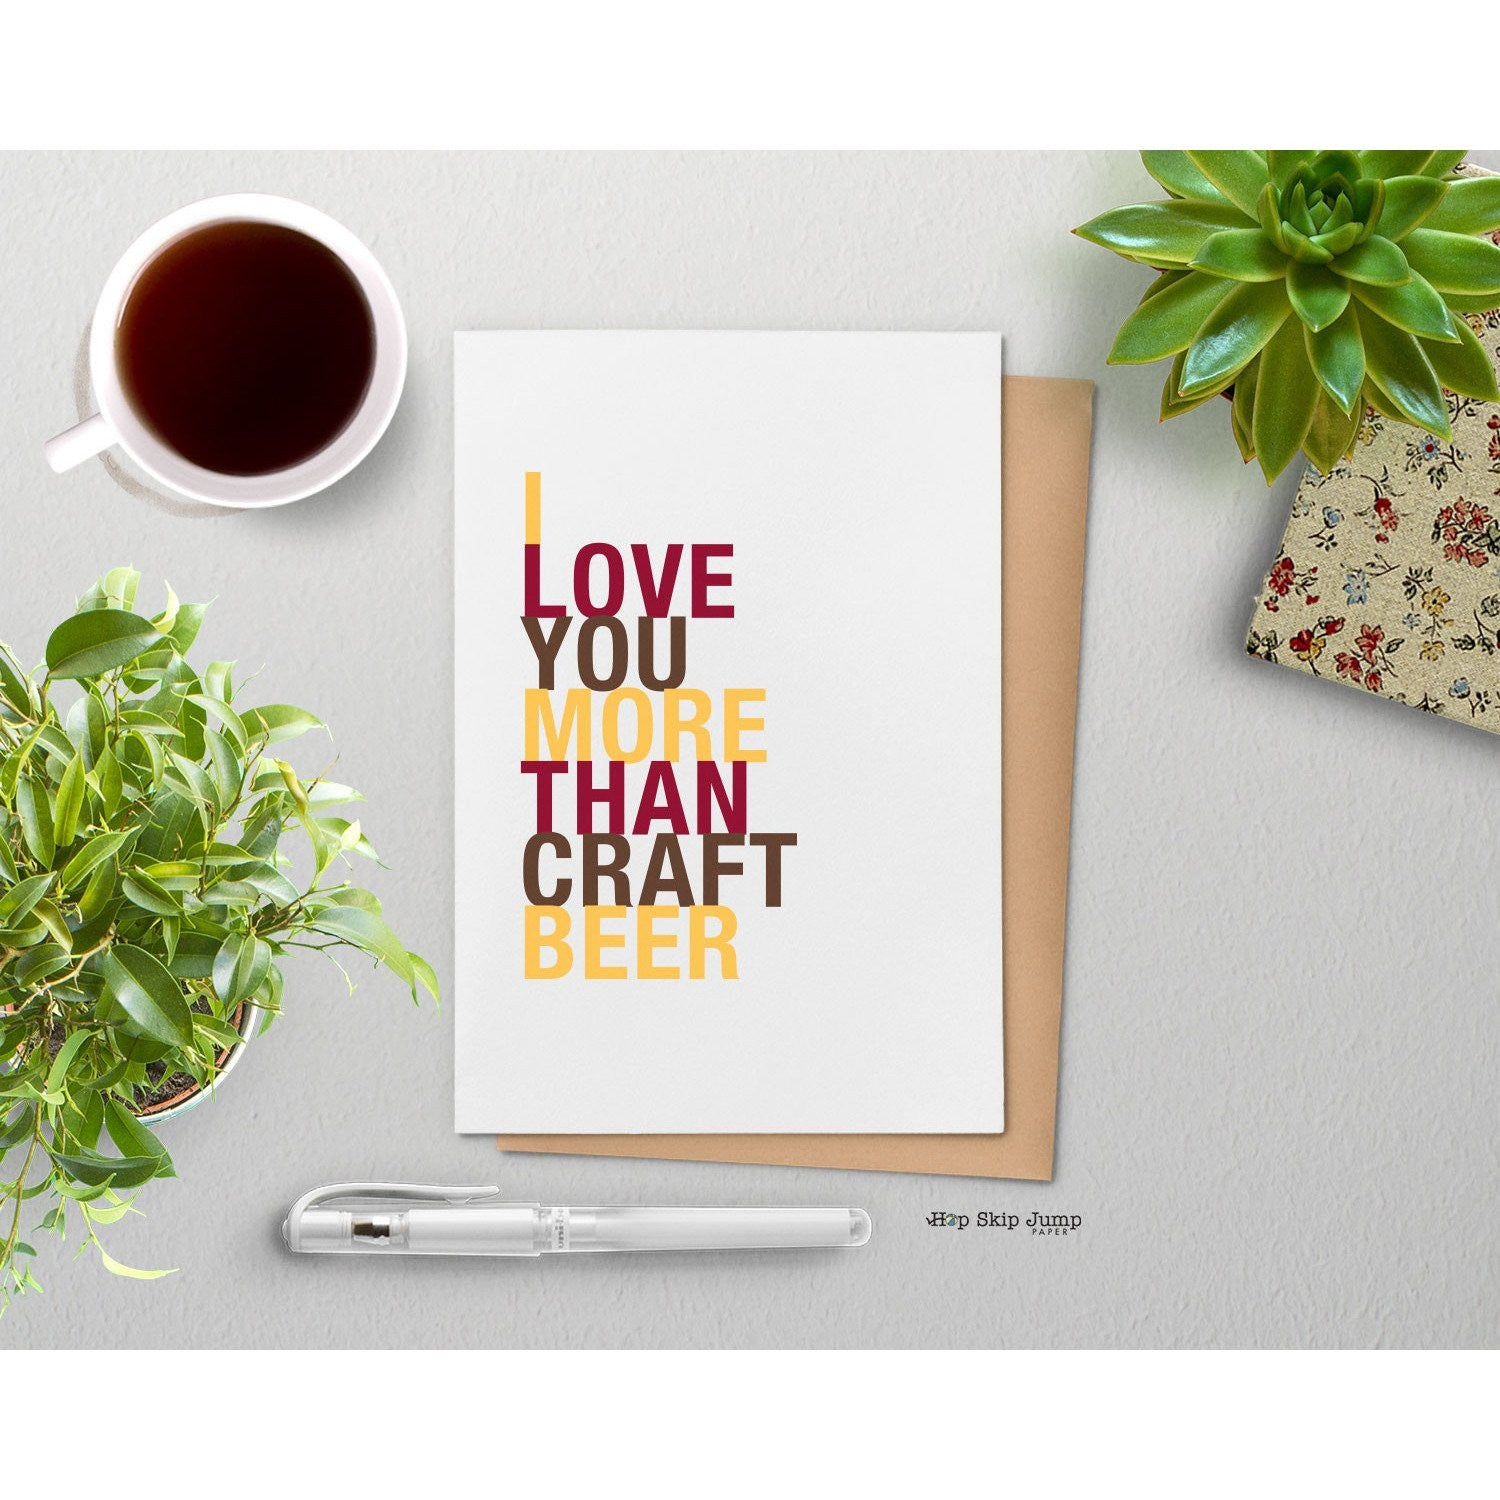 I Love You More Than Craft Beer greeting card  - Shop Online